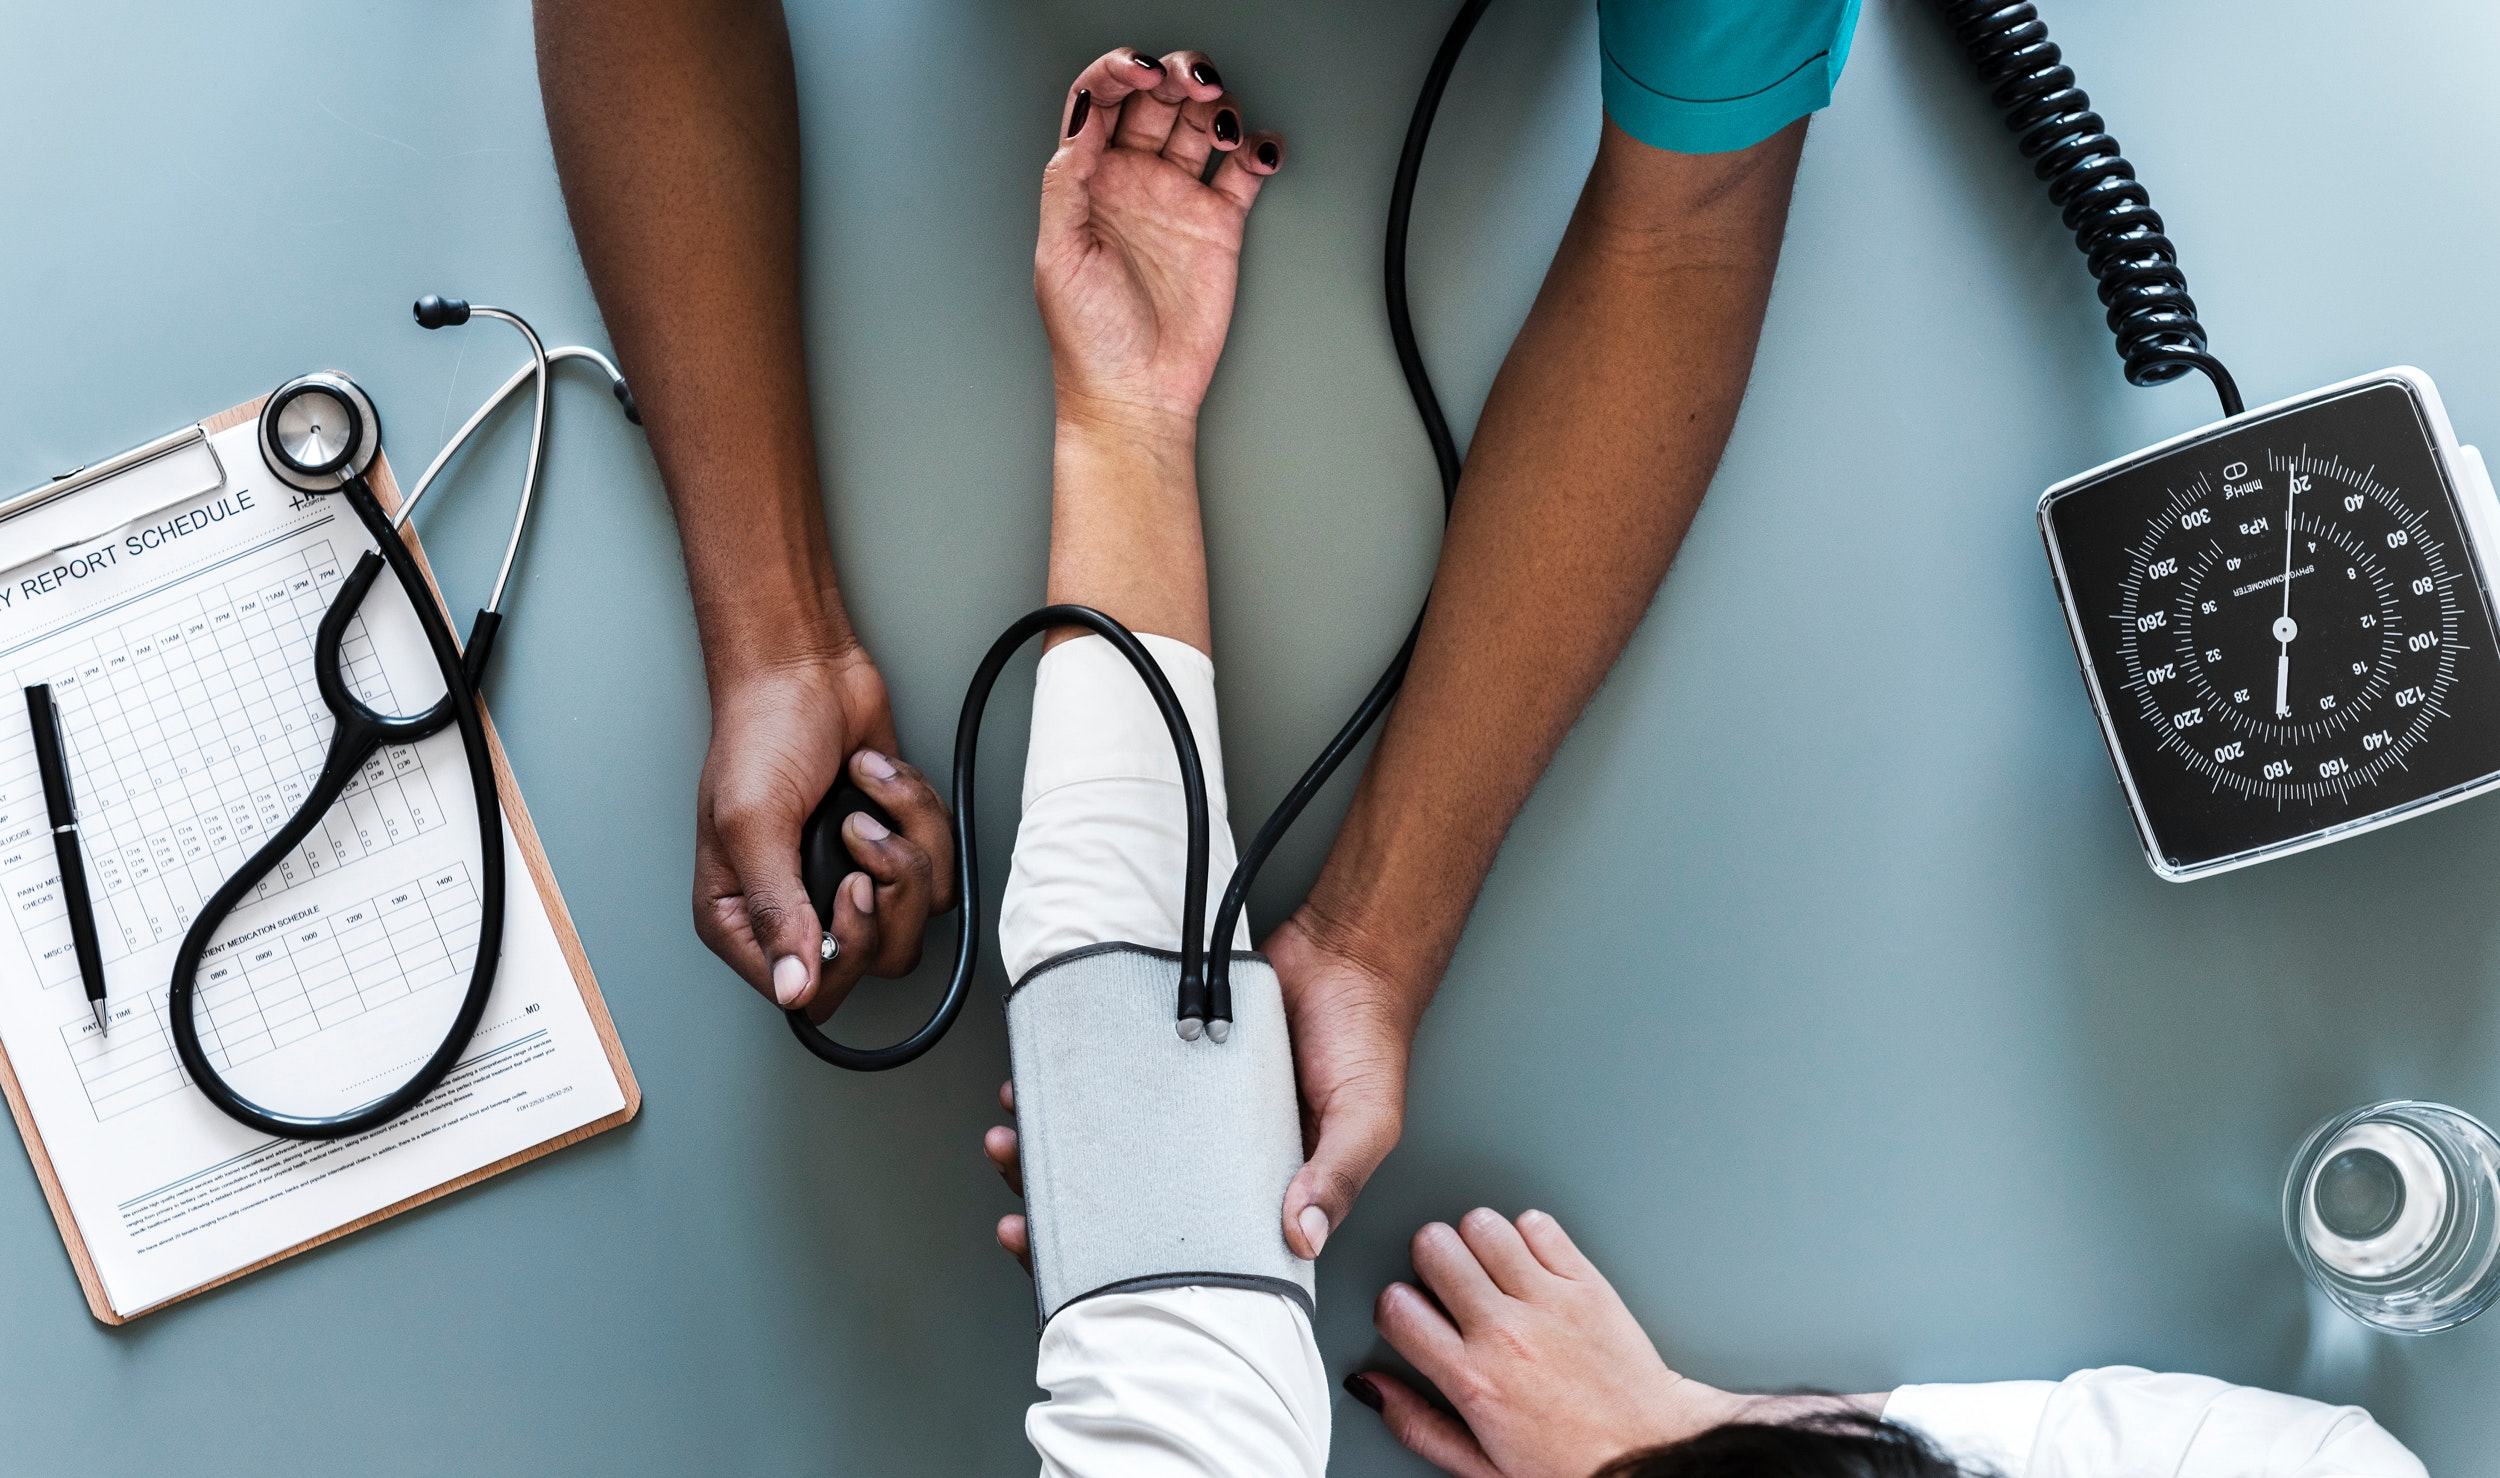 Person Using Black Blood Pressure Monitor, Arms, Monitoring, Water, Treatment, HQ Photo